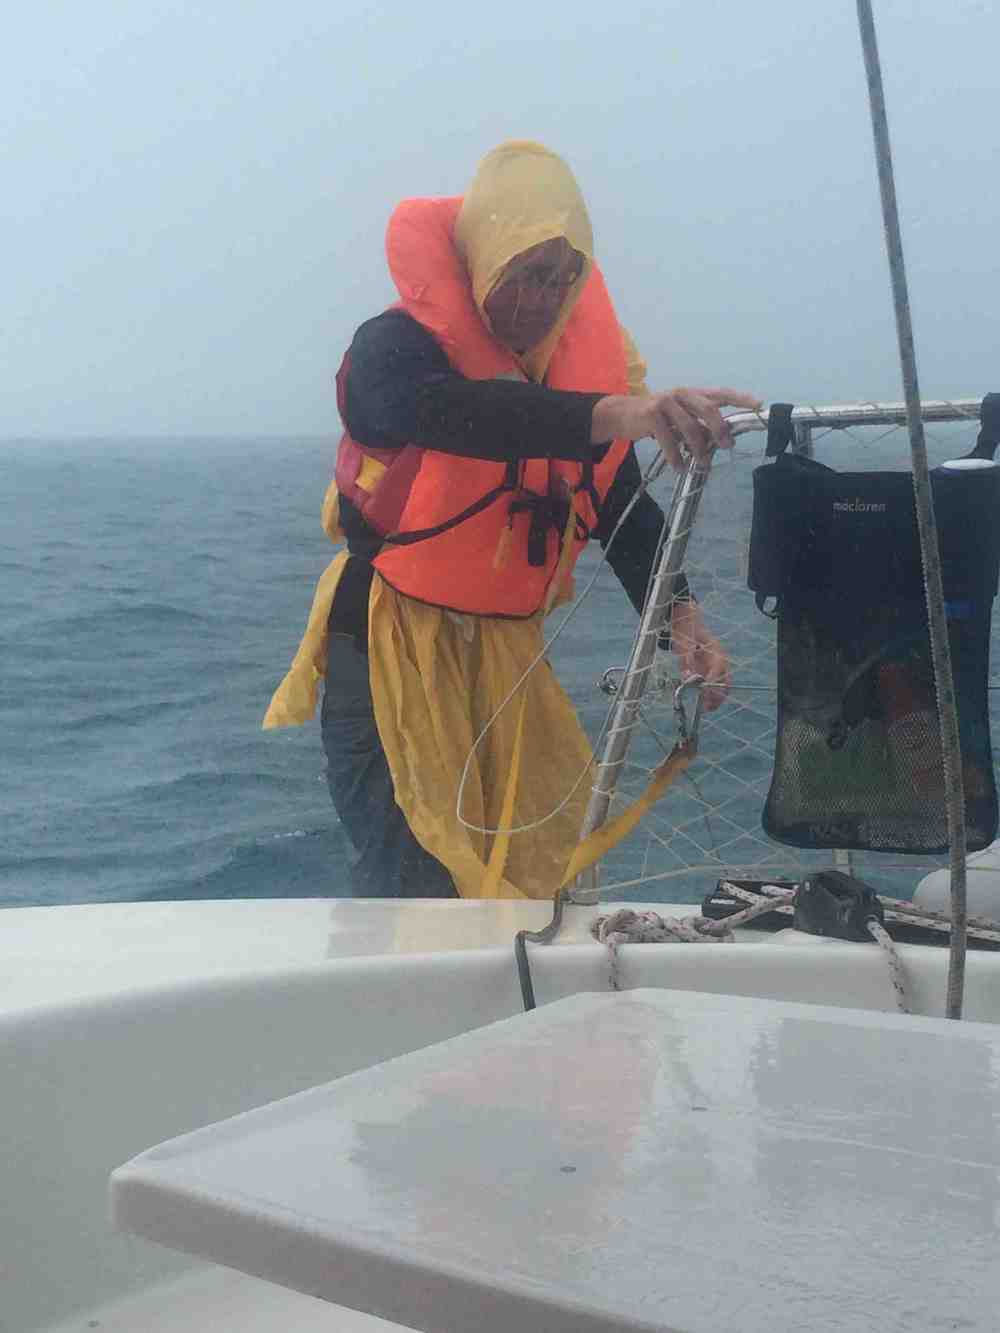 Clipping in while bailing the dinghy